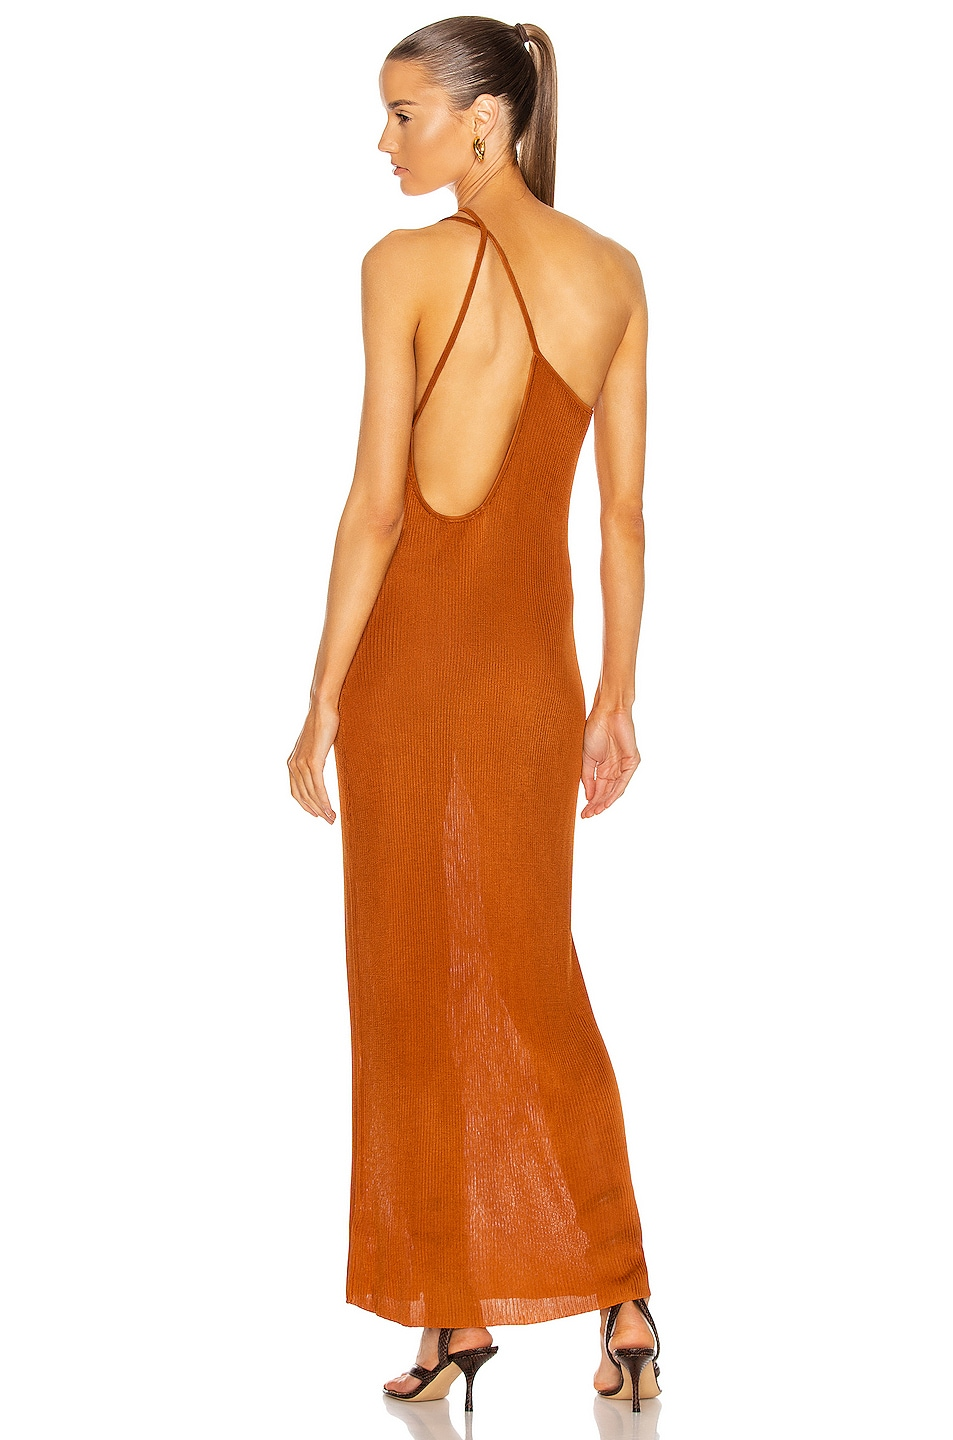 Image 1 of Auteur Nour Dress in Tan